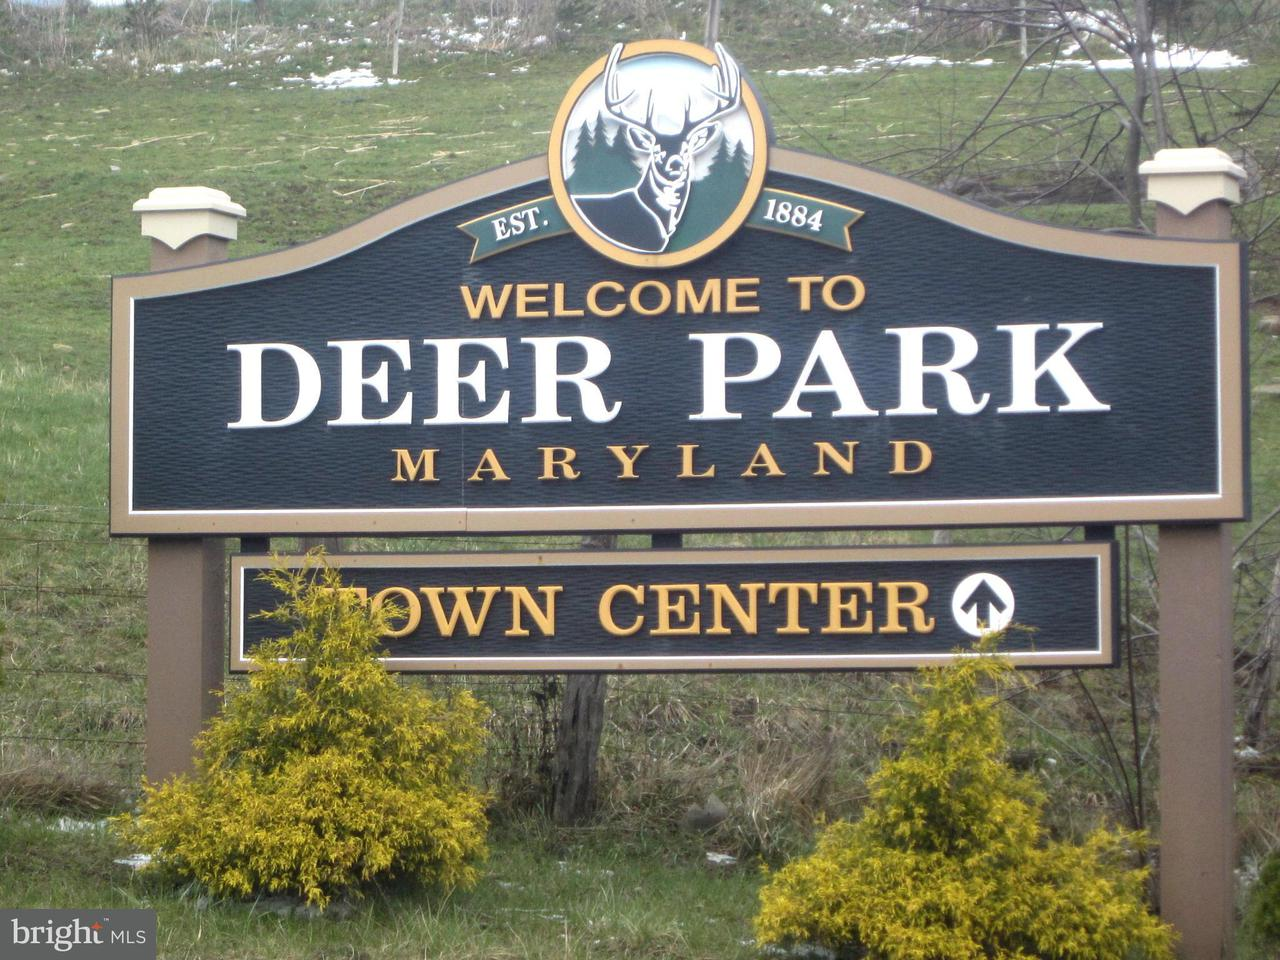 Land for Sale at Old Altamont Rd Deer Park, Maryland 21550 United States